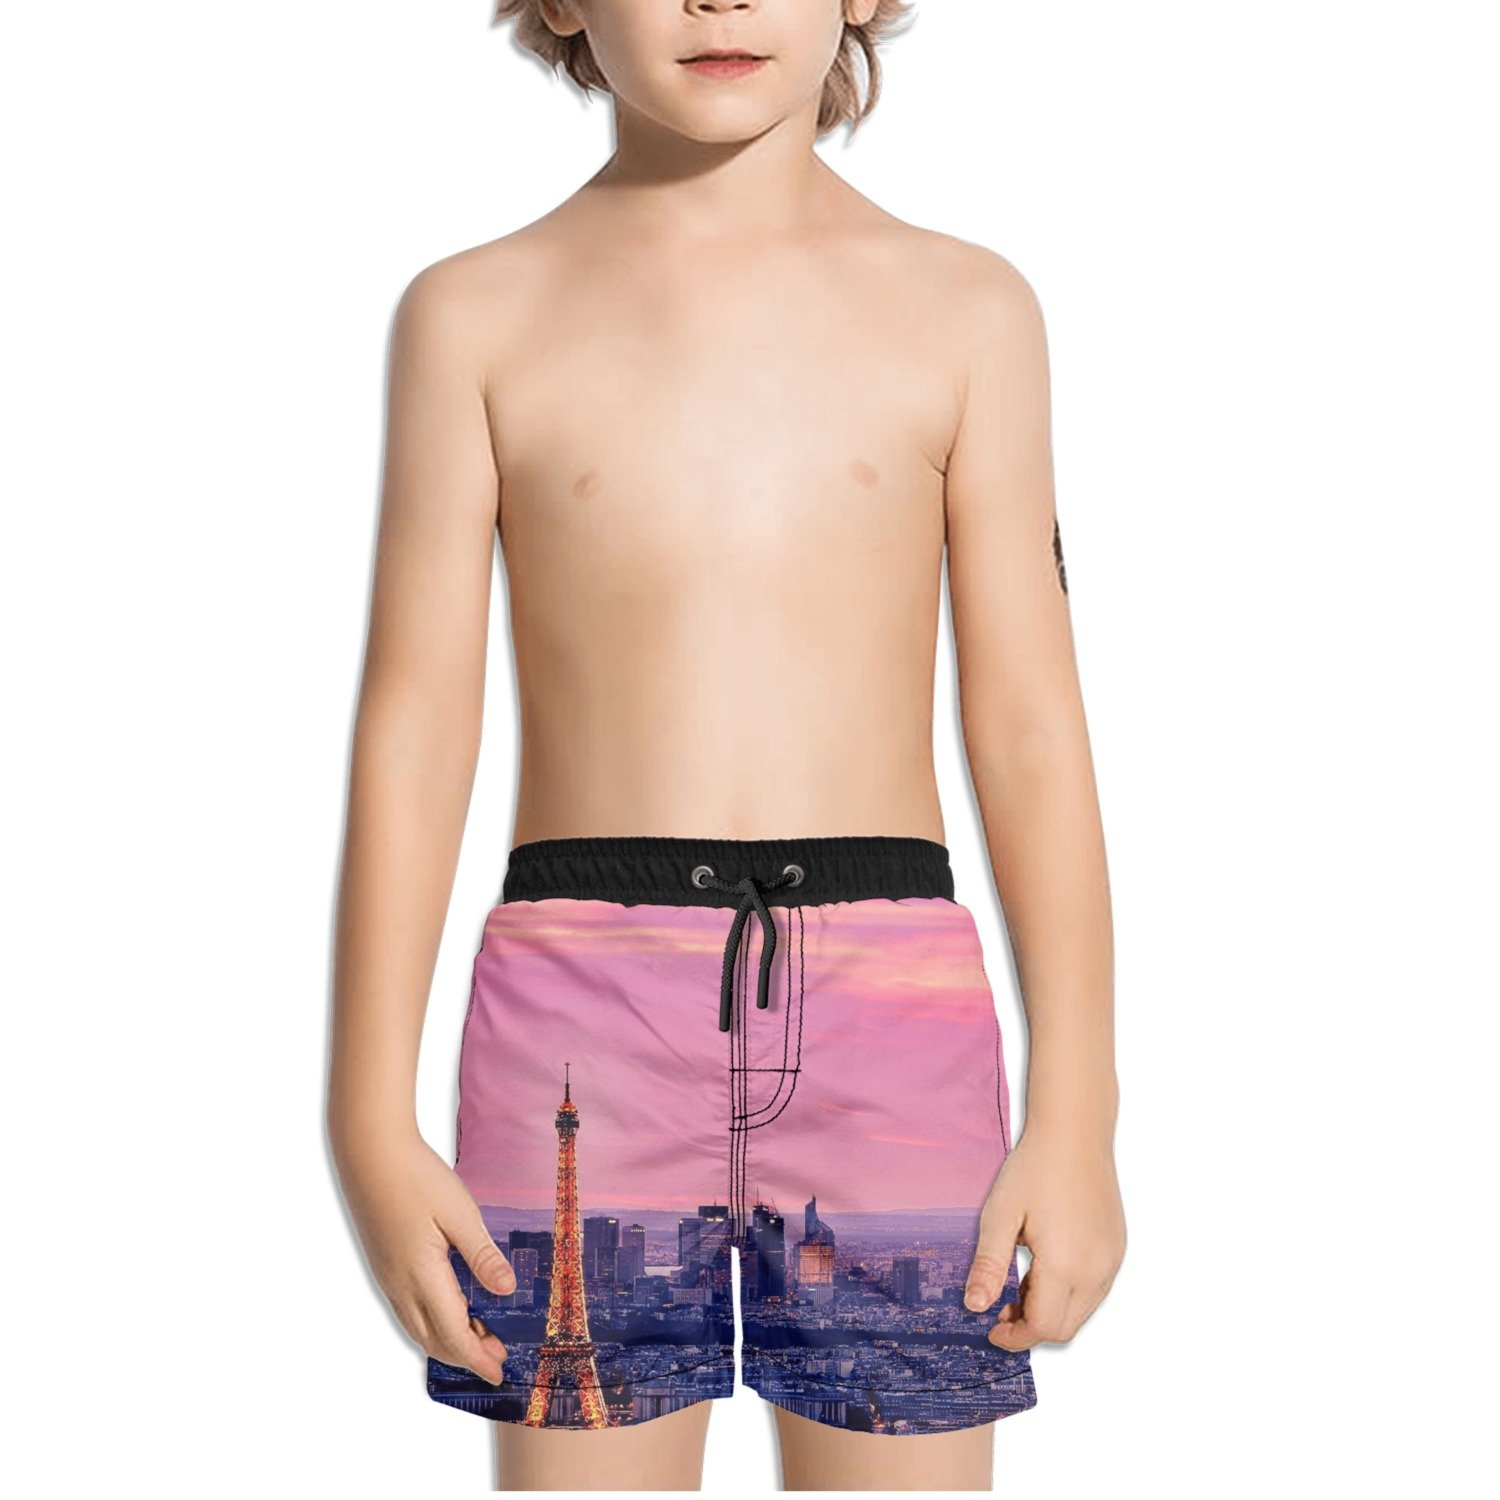 Trum Namii Boys Quick Dry Swim Trunks Paris Eiffel Tower View Shorts